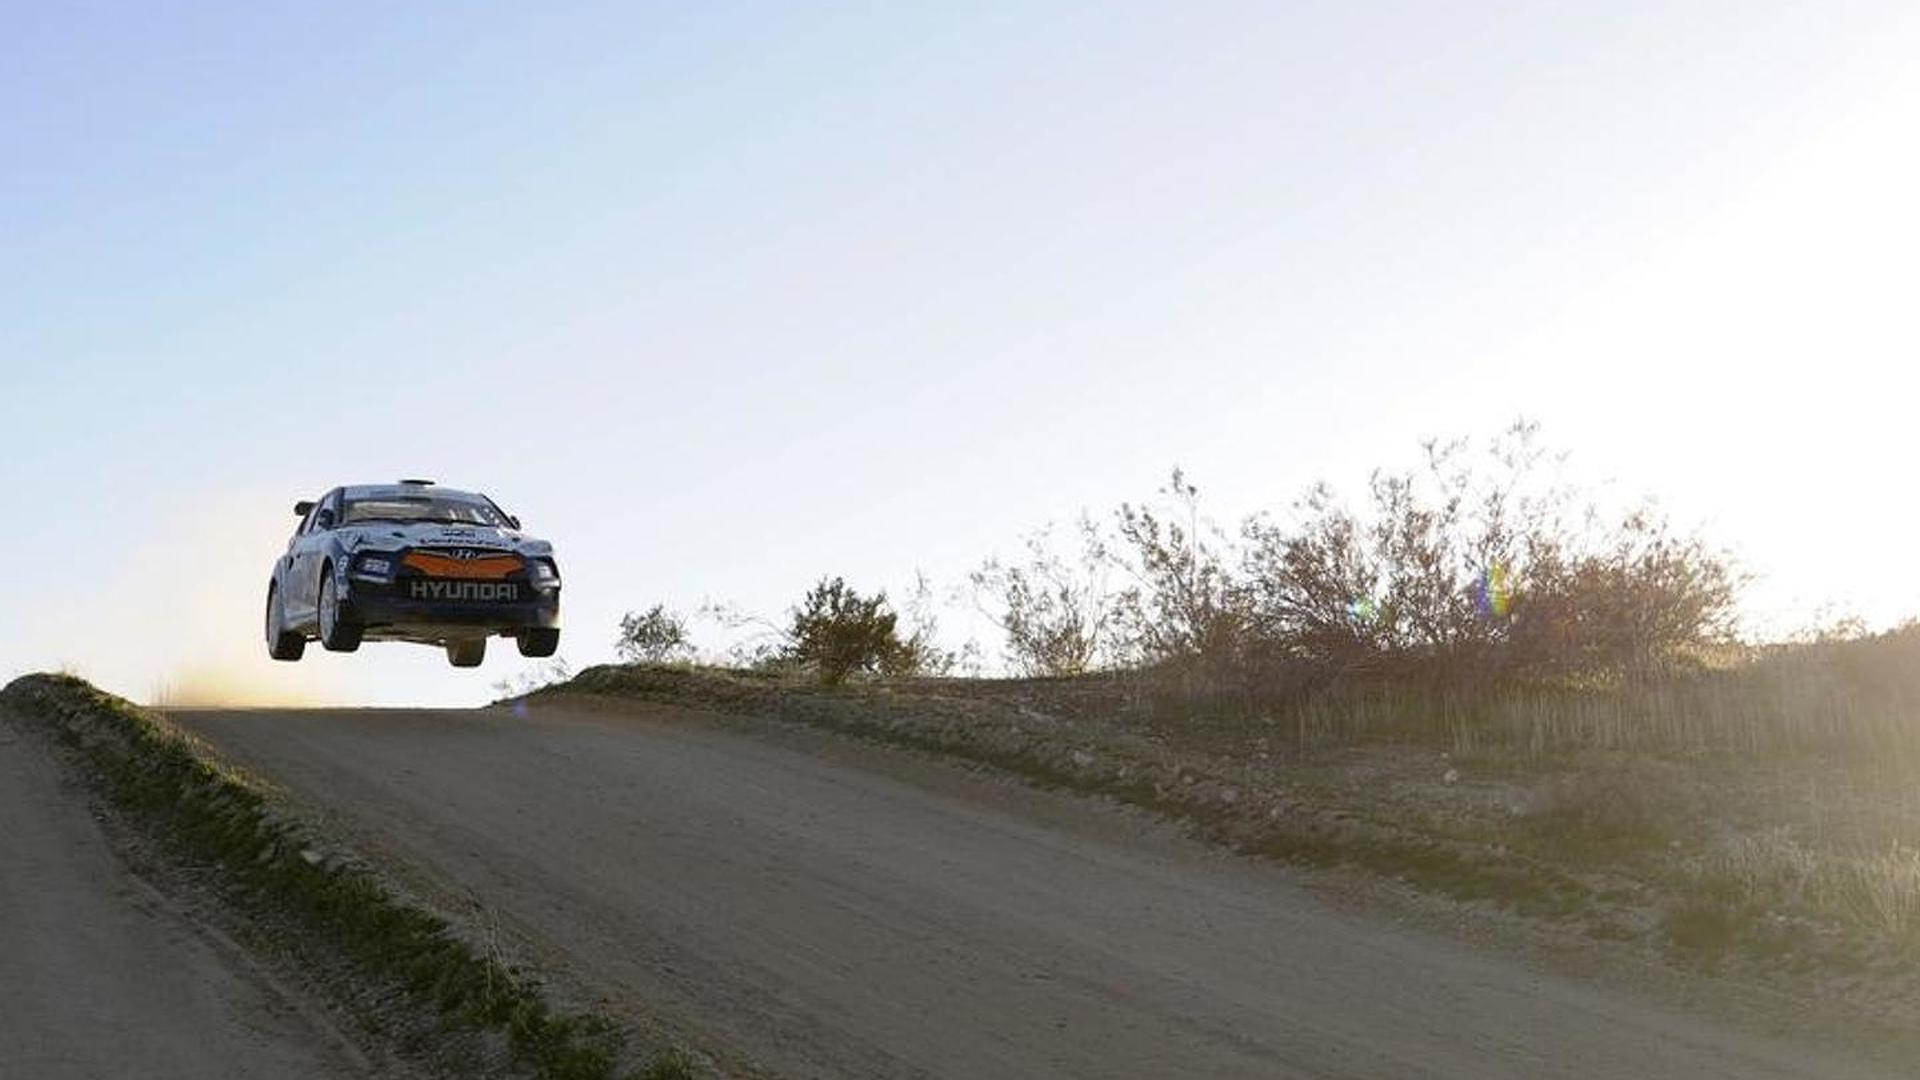 Hyundai Veloster Rally Car set for Chicago debut